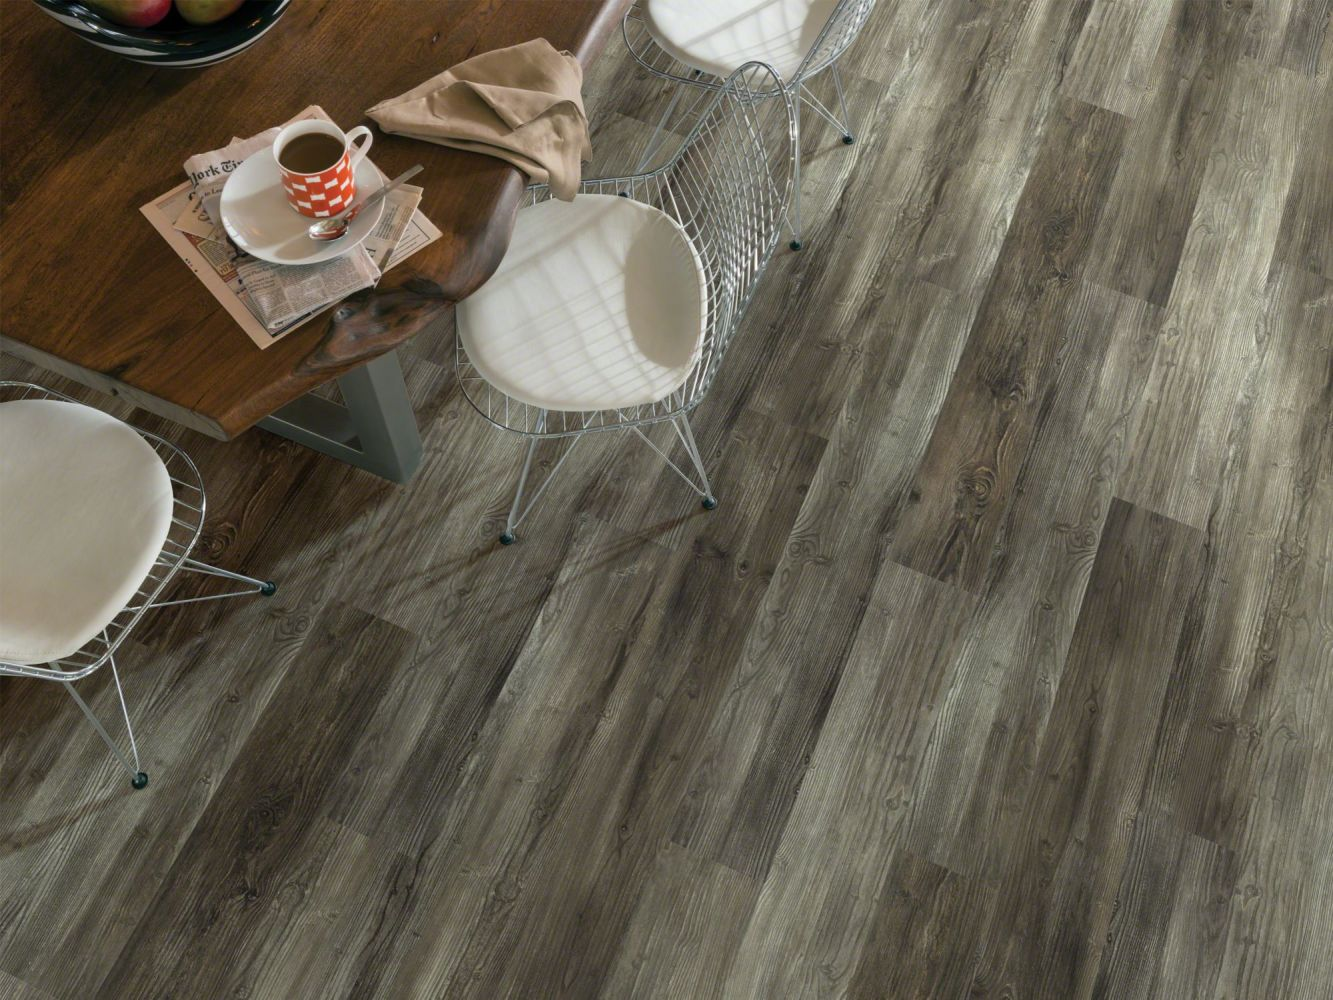 Shaw Floors Vinyl Residential Basilica Plus Harbour Bay 05030_2894V